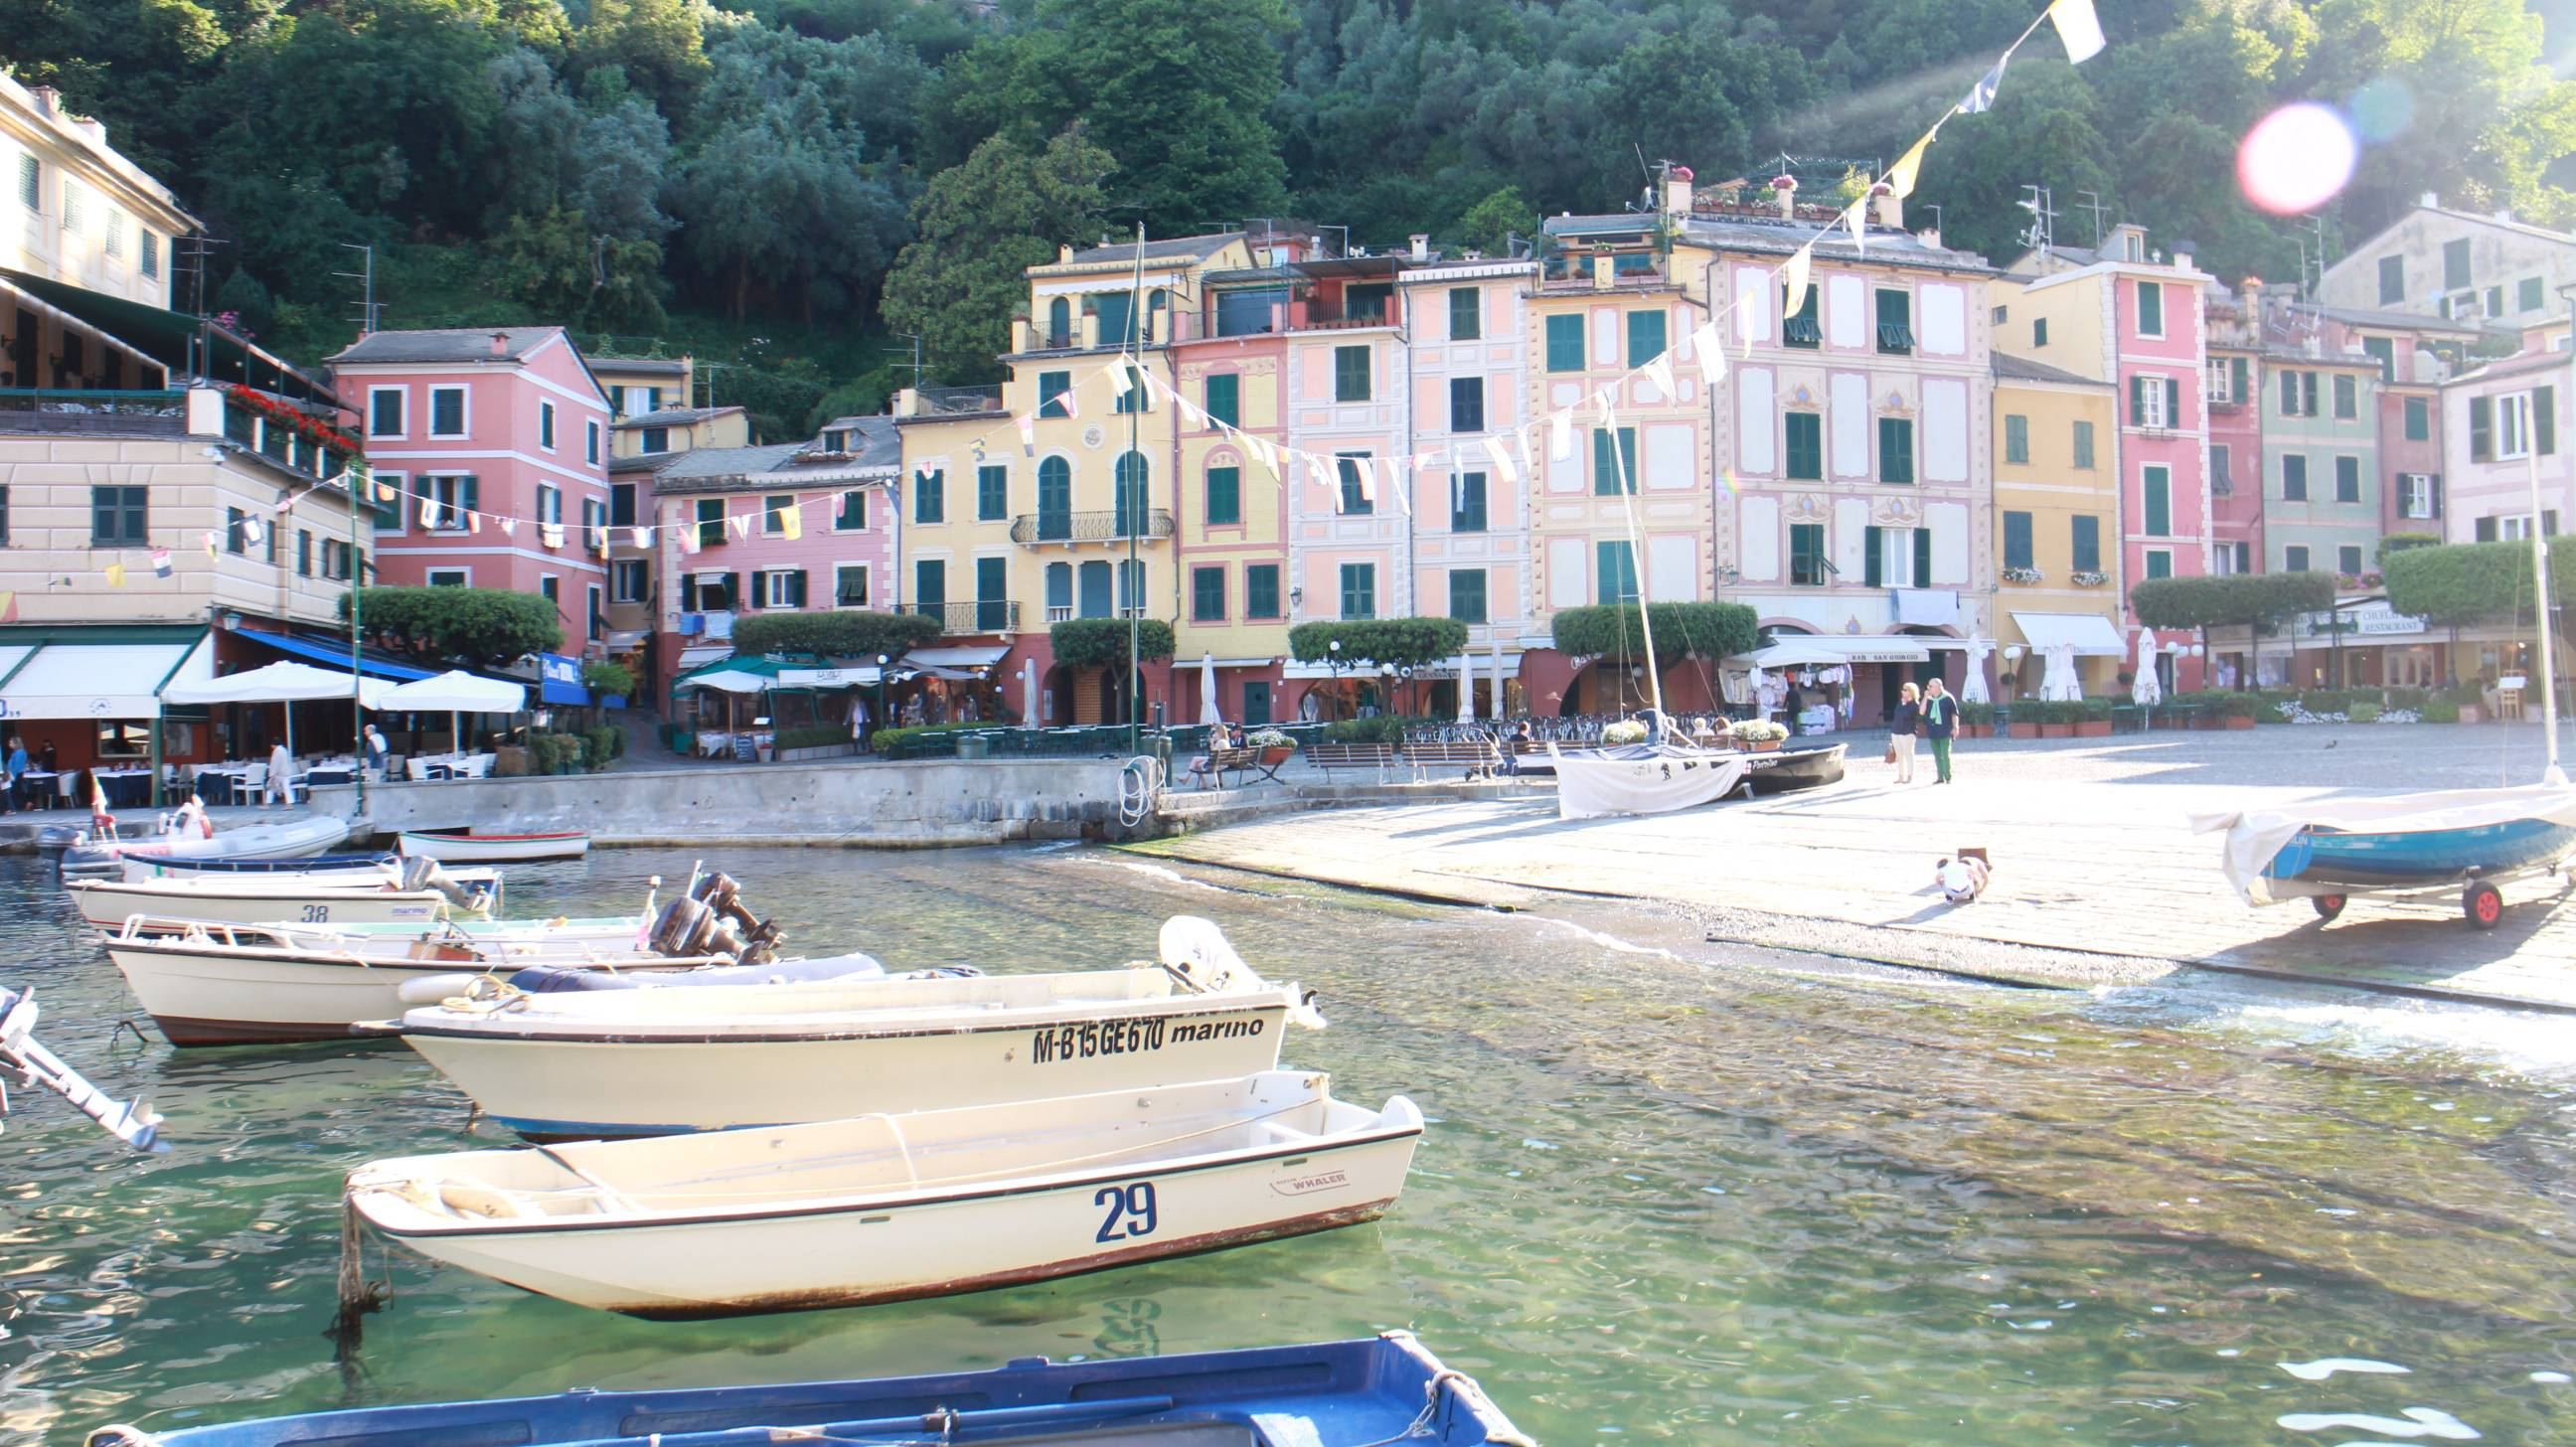 Photo 1: Portofino, le Saint-Tropez Italien